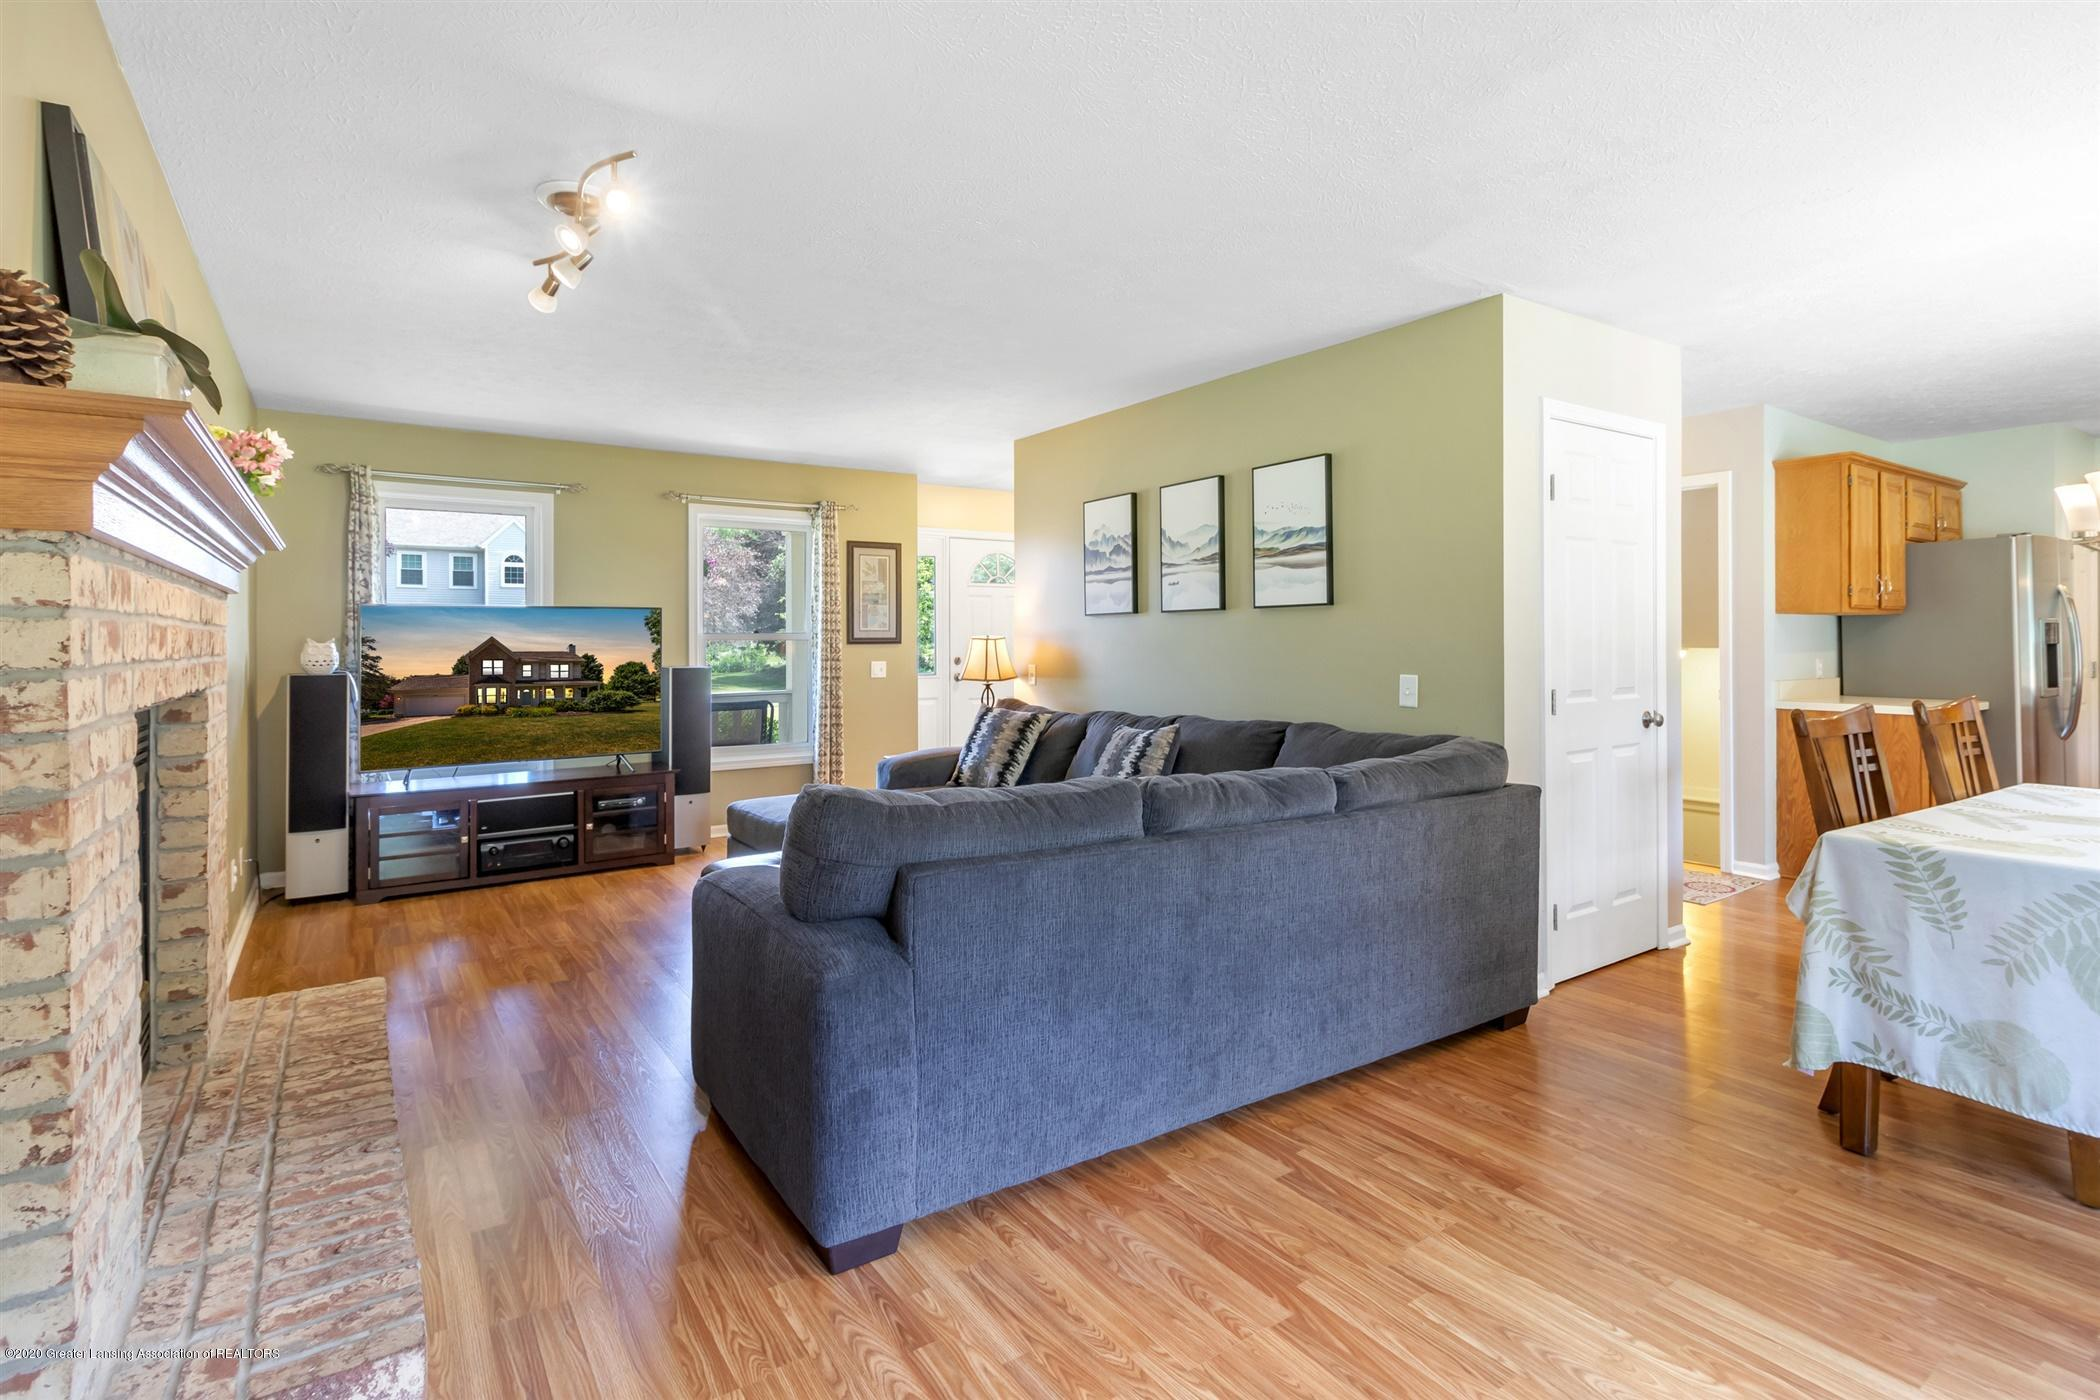 2945 Whistlewood Way - 11-2945Whistlewood-WindowStill-Real - 11